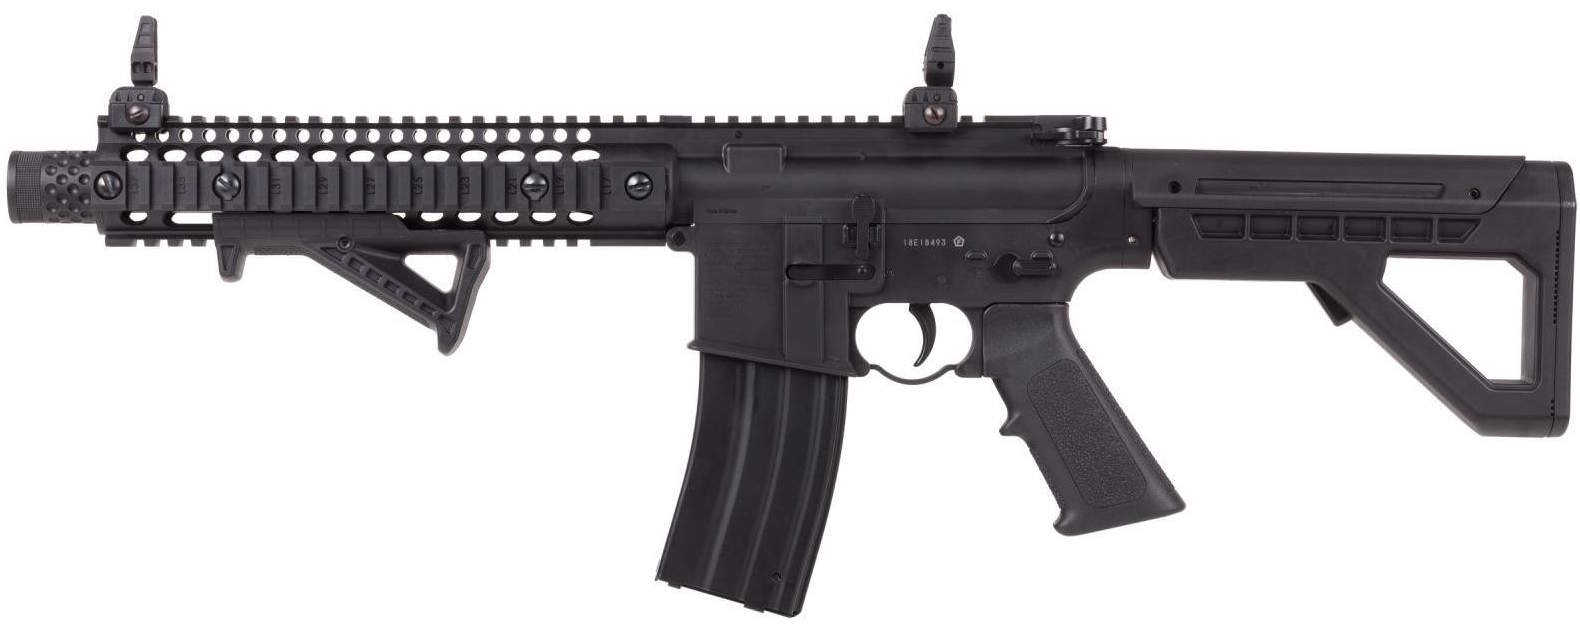 Crosman DPMS SBR CO2 Blowback BB M4 Left Side.jpg